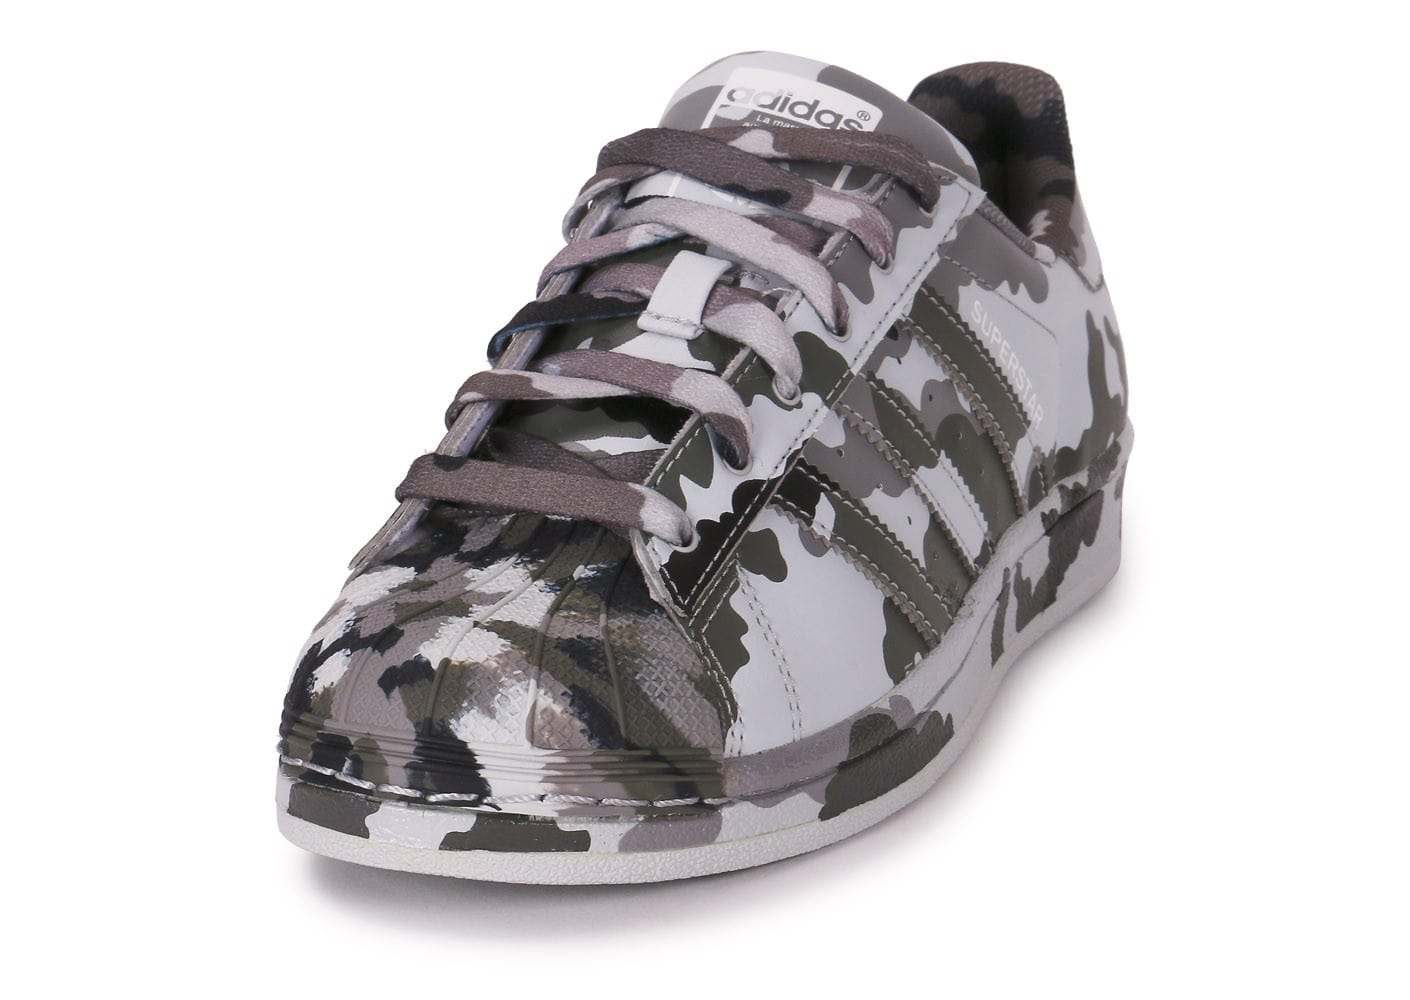 newest f2443 0f468 ... real chaussures adidas superstar junior camo vue avant 7651b 877b2